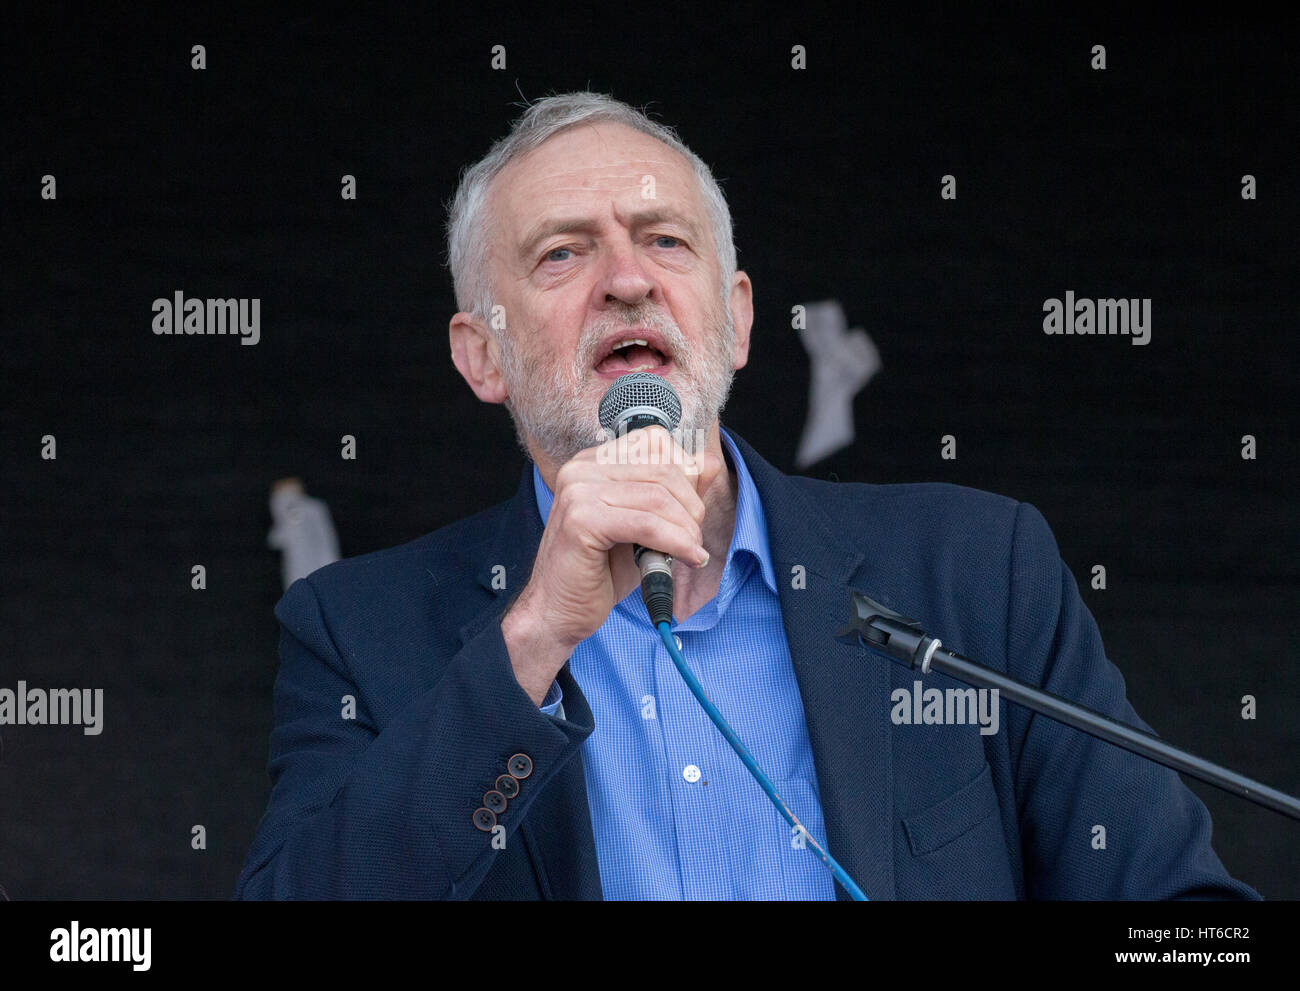 Labour leader,Jeremy Corbyn,speaks at an NHS rally in Central London - Stock Image